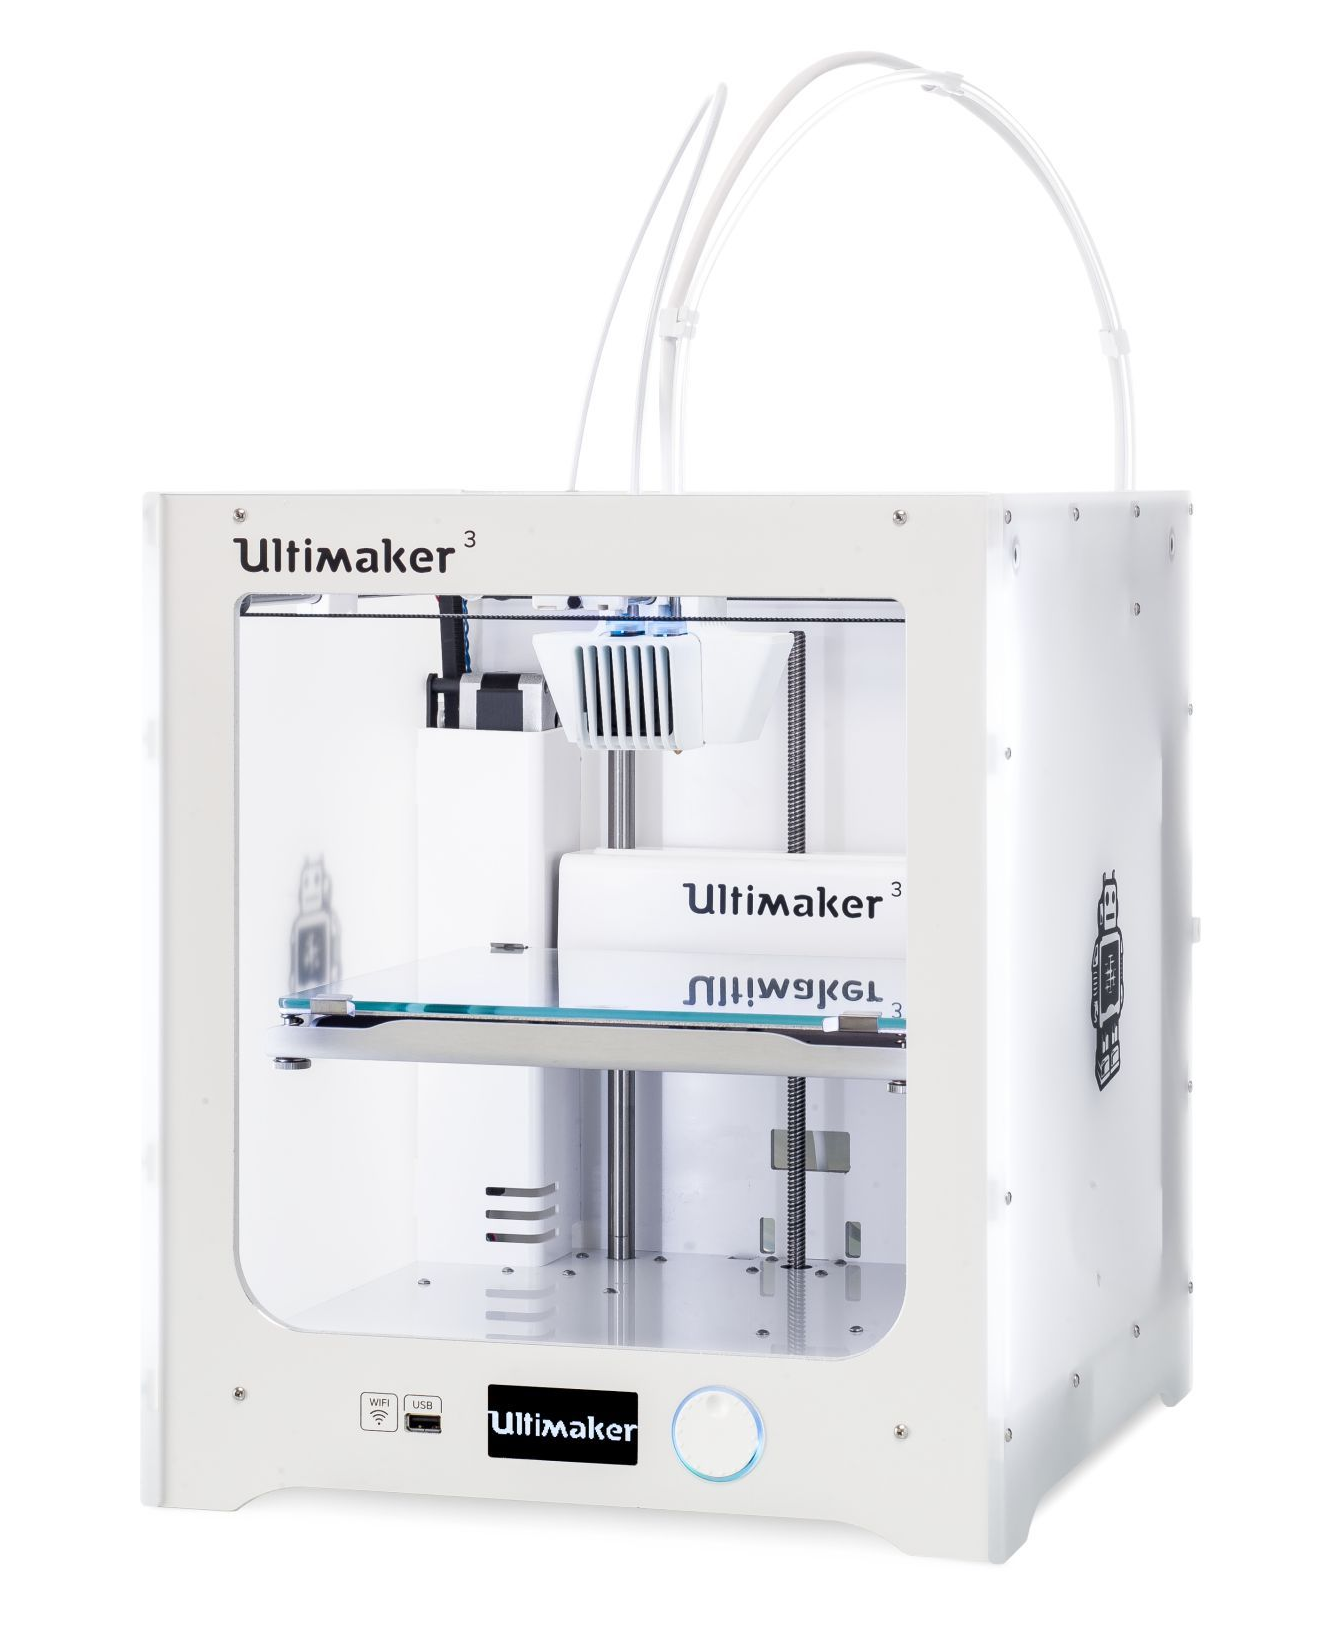 how to add unlisted material to ultimaker 3